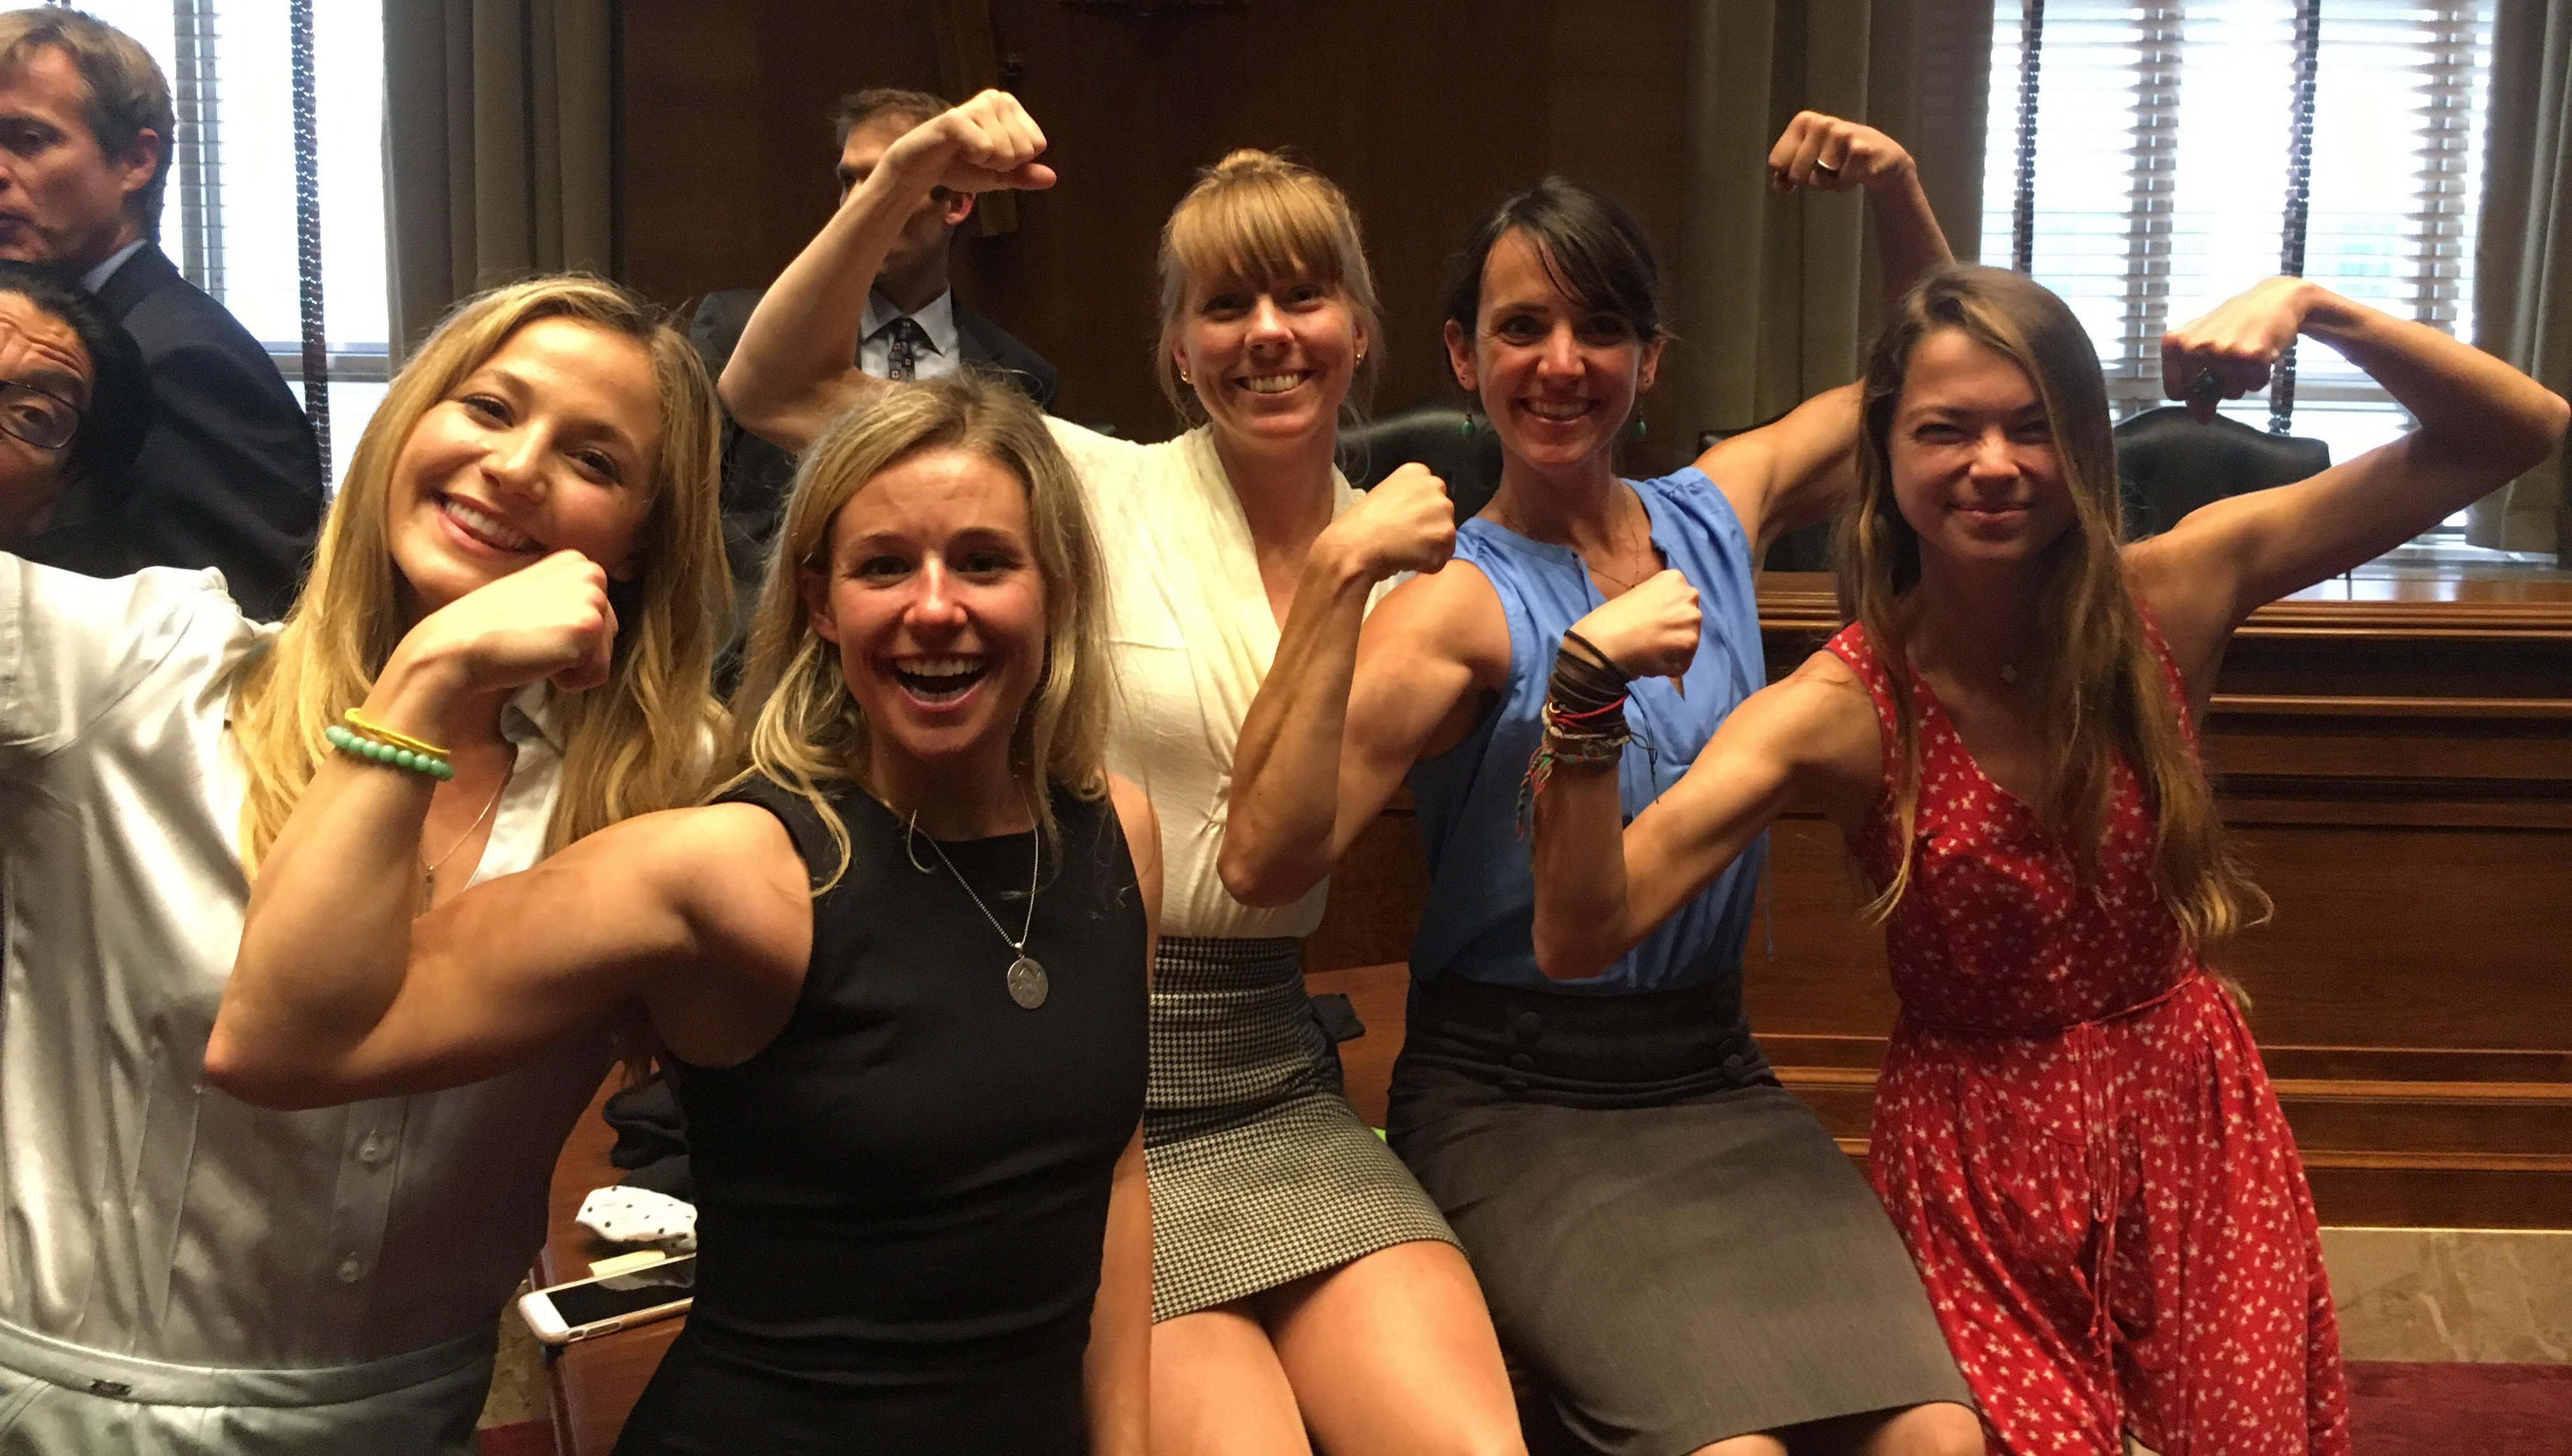 Quinn was also part of a delegation of 50 climbers who lobbied Congress in Washington, DC, last May on behalf of public lands and the environment. She's pictured here, second from right; the other women, from left to right, are Sasha DiGiulian, Caroline Gleich, Libby Sauter, and Katie Boue (far right). [Photo] Derek Franz